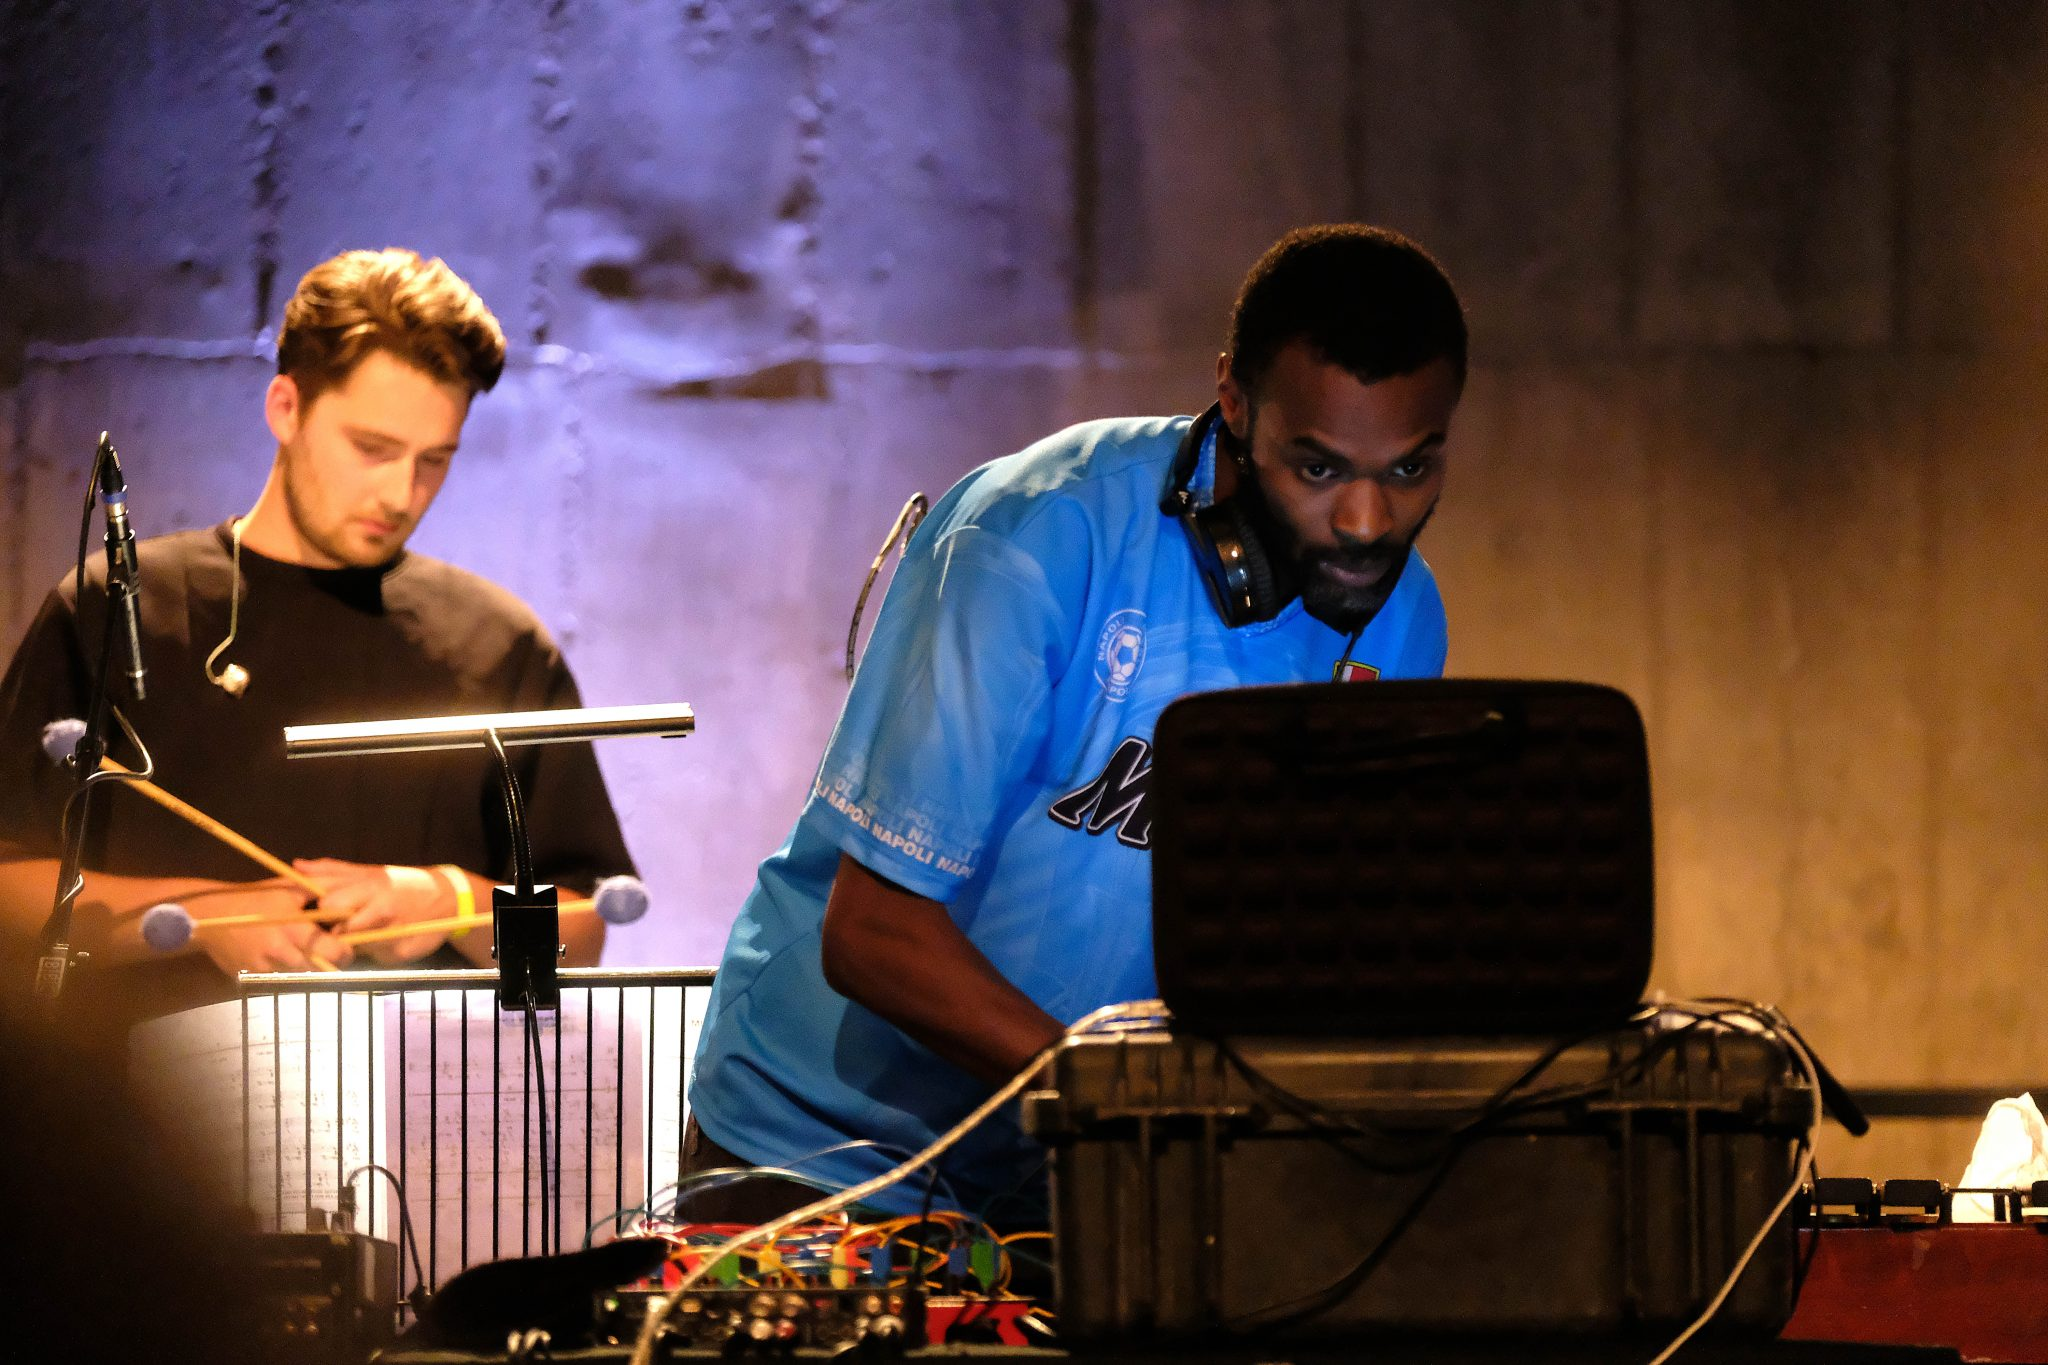 London Contemporary Orchestra perform a specially curated Prom in the Tanks at Tate Modern, Sara Mohr-Pietsch presents performances by Actress: electronics, Rodrigo Constanzo: drums/electronics/lights, Exaudi: vocal ensemble, Robert Ames & Hugh Brunt; directors, on Wednesday 6 Sept. 2017. Photo by Mark Allan FADMagazine